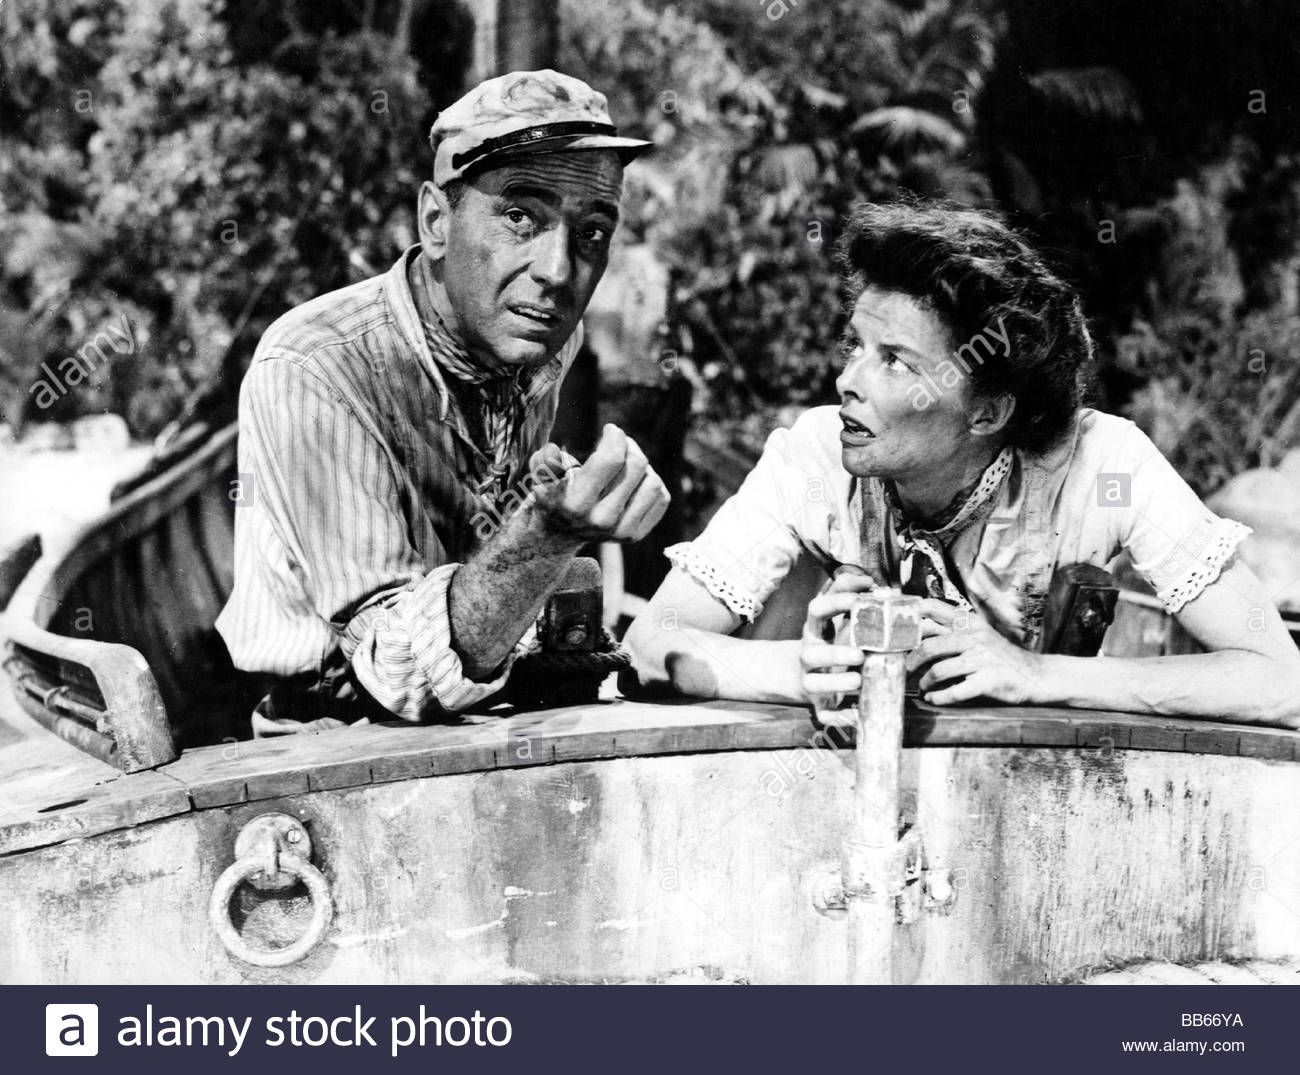 Movie the african queen usa 1951 director john huston scene stock photo royalty free image 24108766 alamy